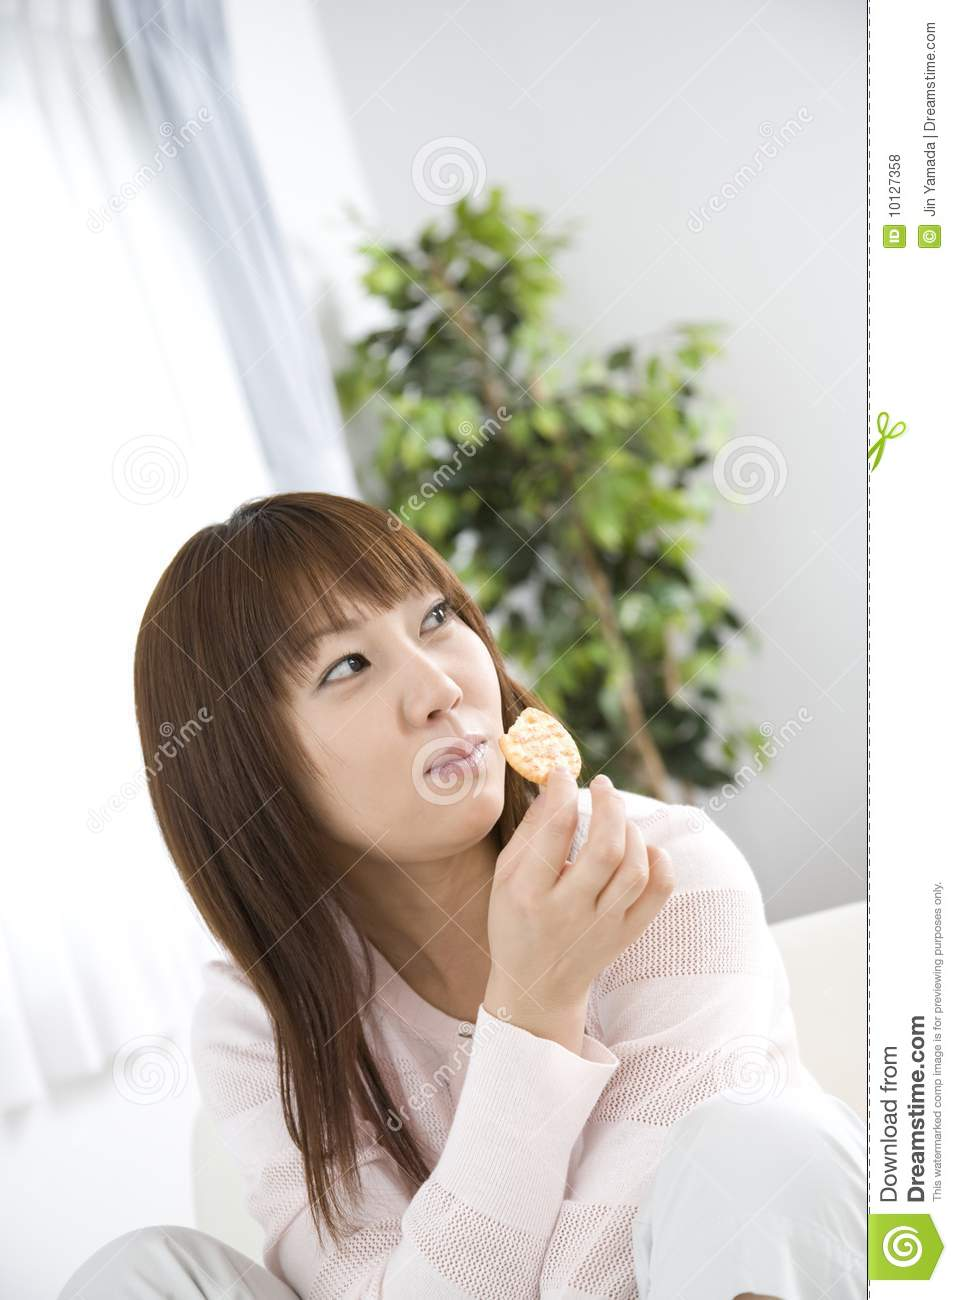 japanese woman eating a snack royalty free stock photos